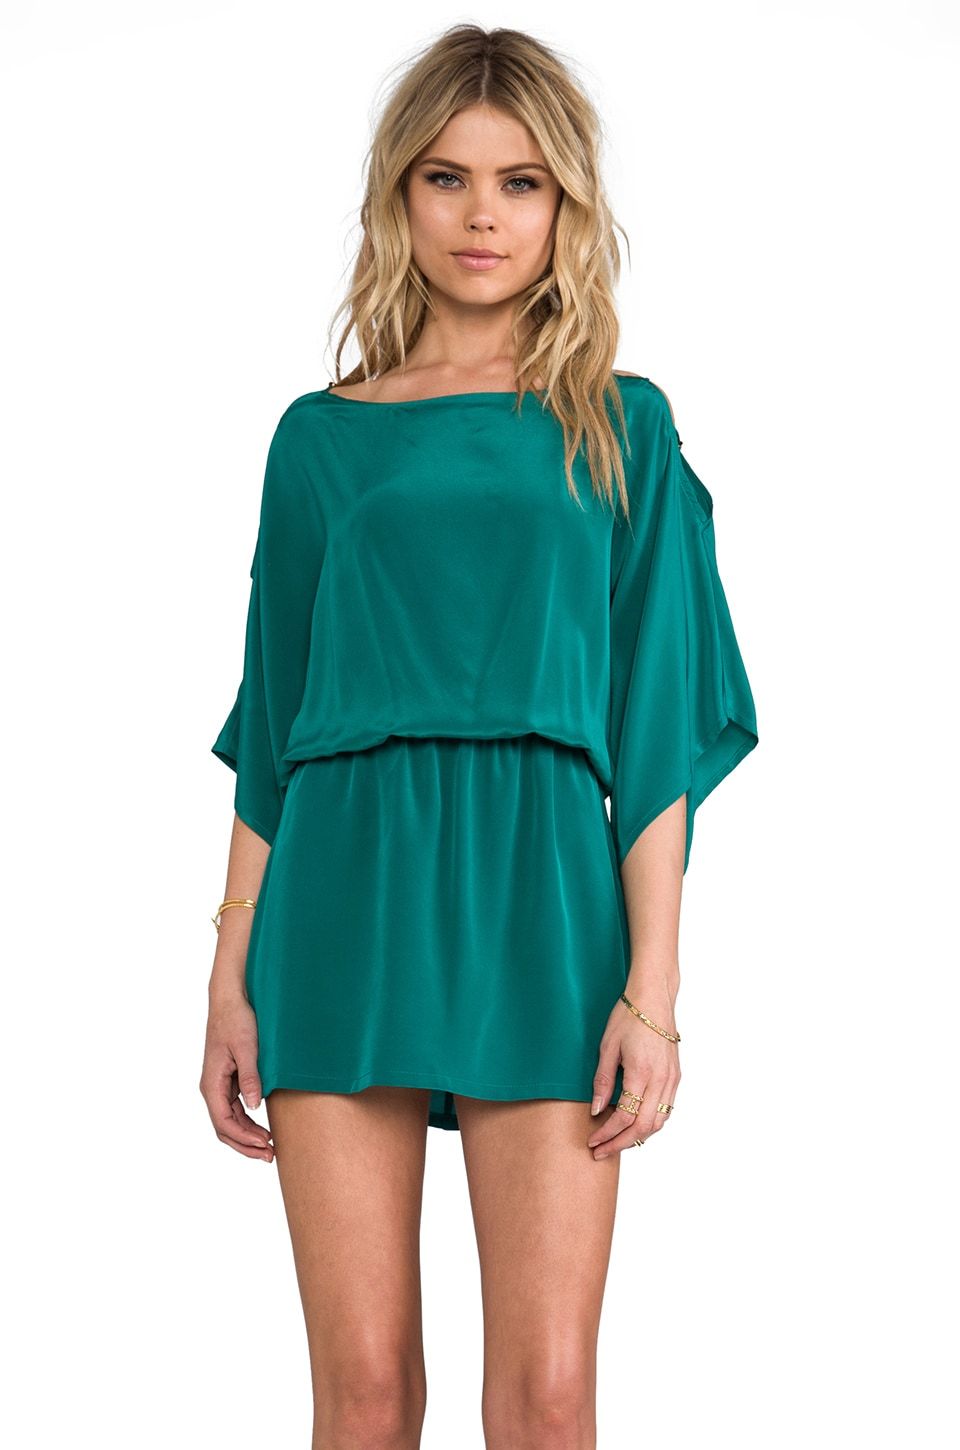 Karina Grimaldi Pampita Solid Mini Dress in Emerald